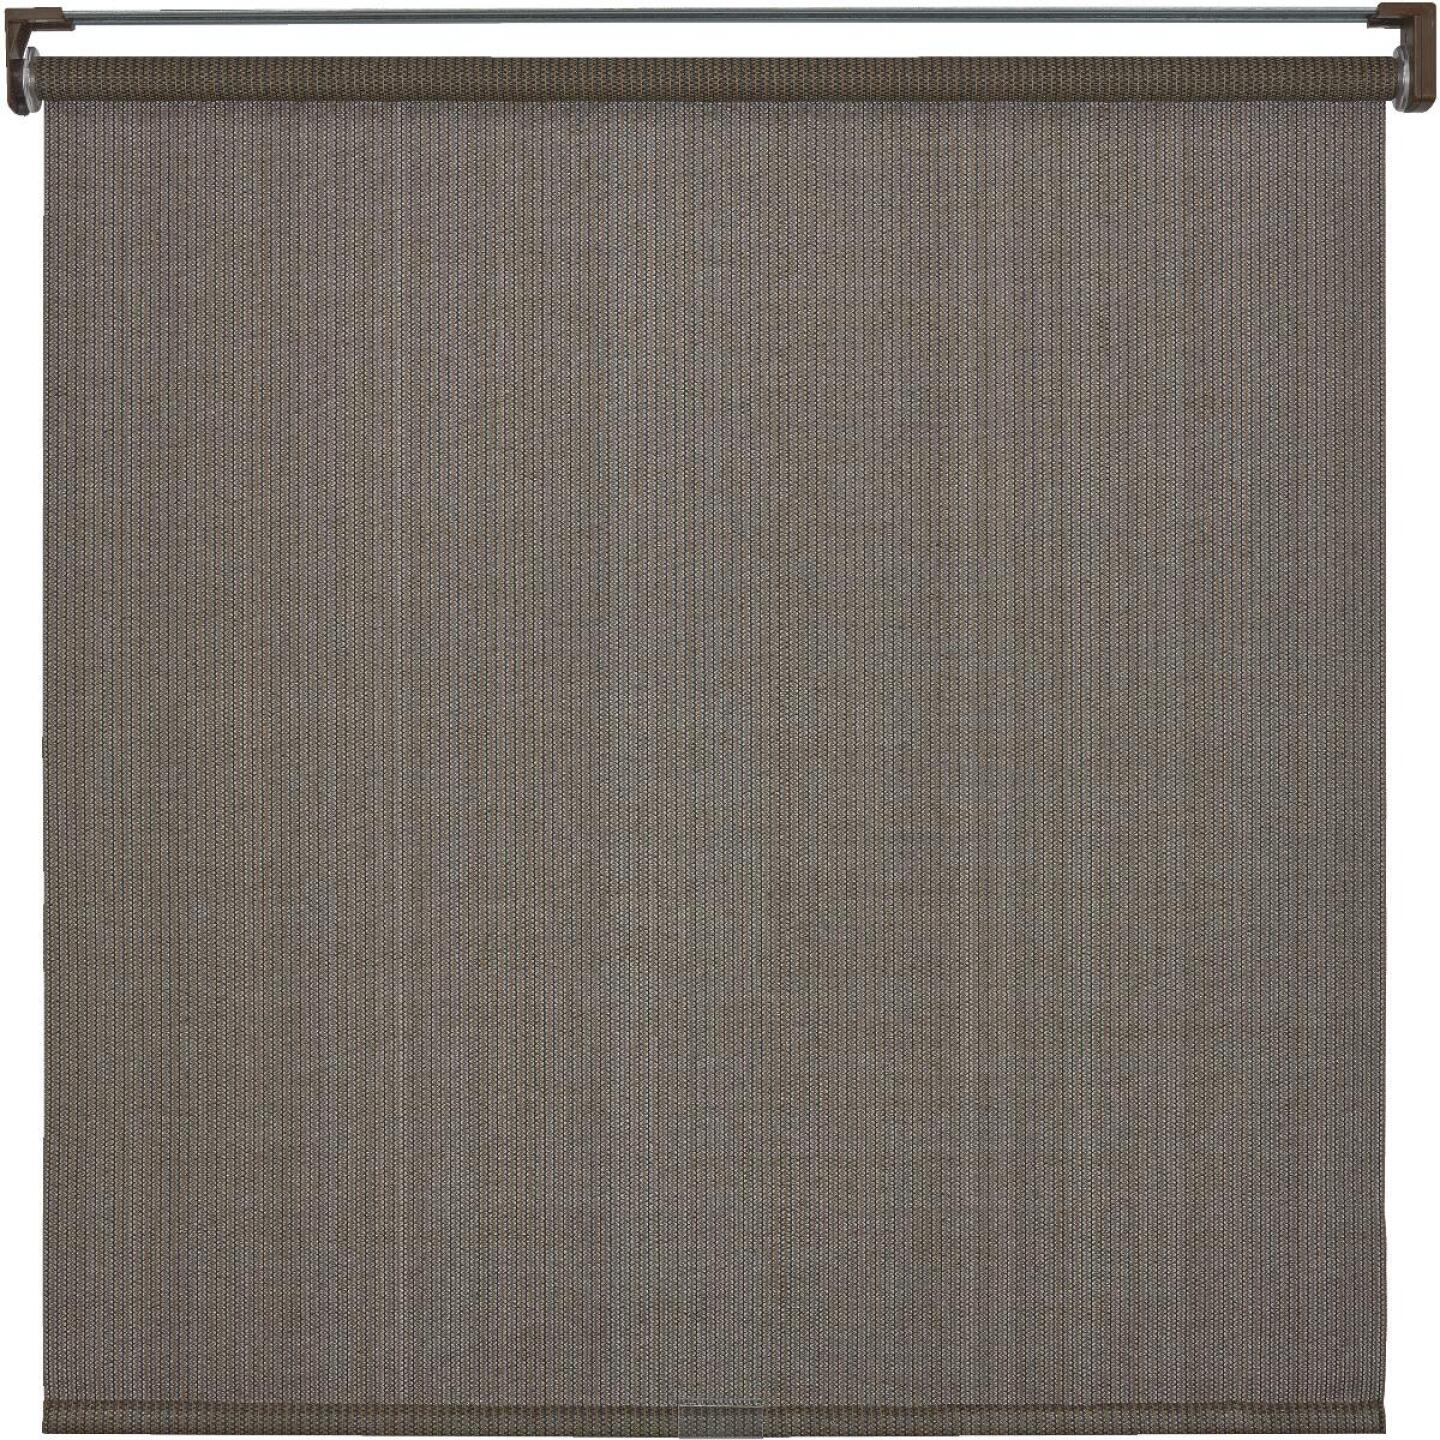 Home Impressions 48 In. x 72 In. Brown Fabric Indoor/Outdoor Cordless Roller Shade Image 1